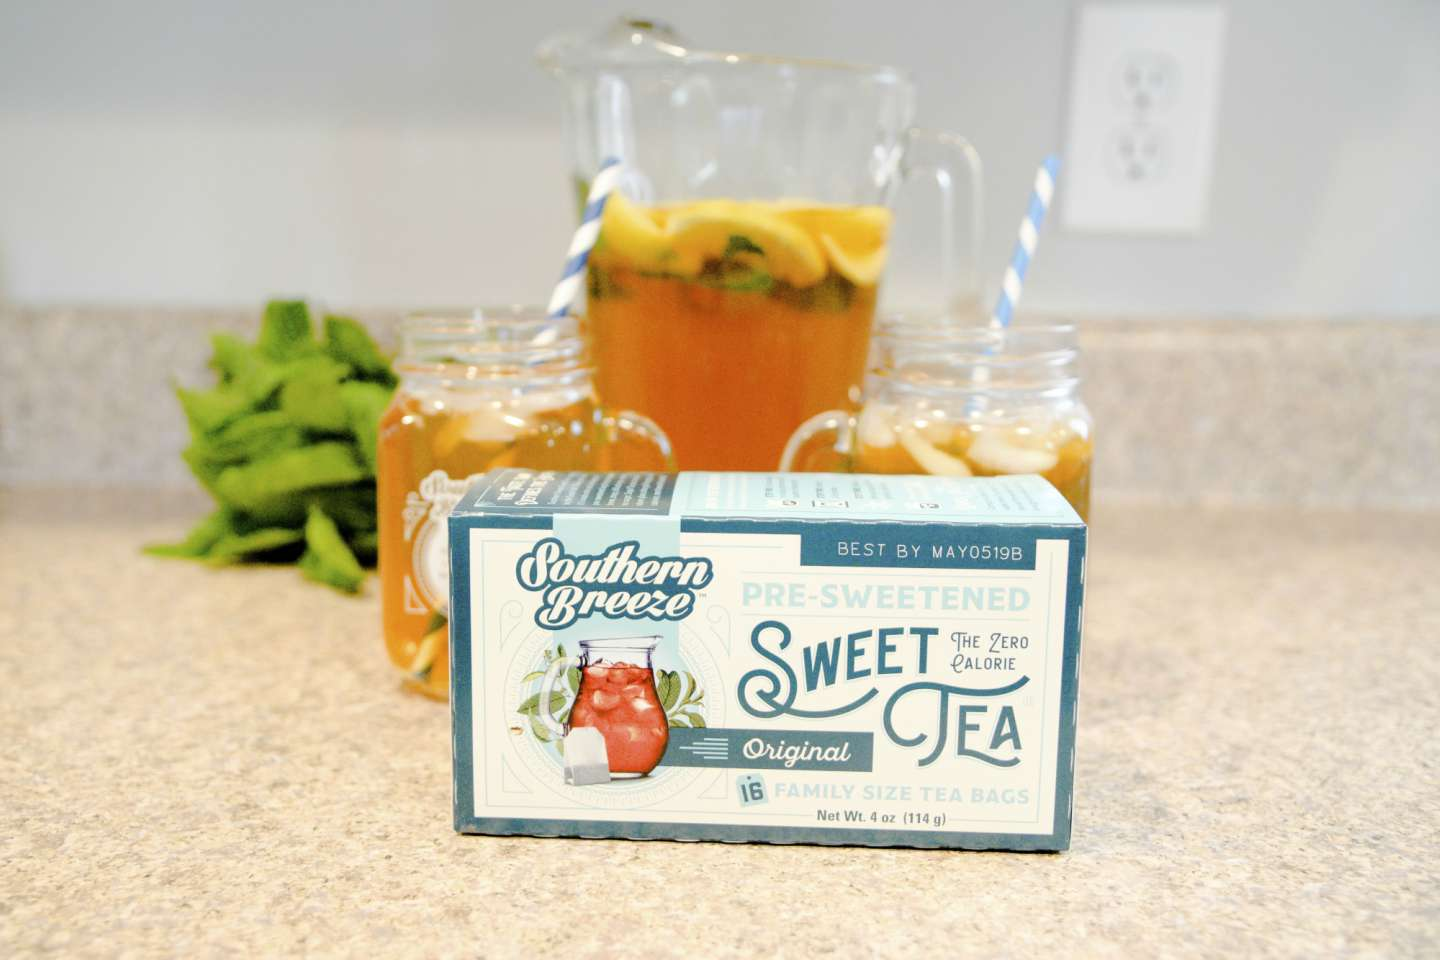 Mint Julep Sweet Tea with Southern Breeze Sweet Tea - I'm Fixin' To - @mbg0112